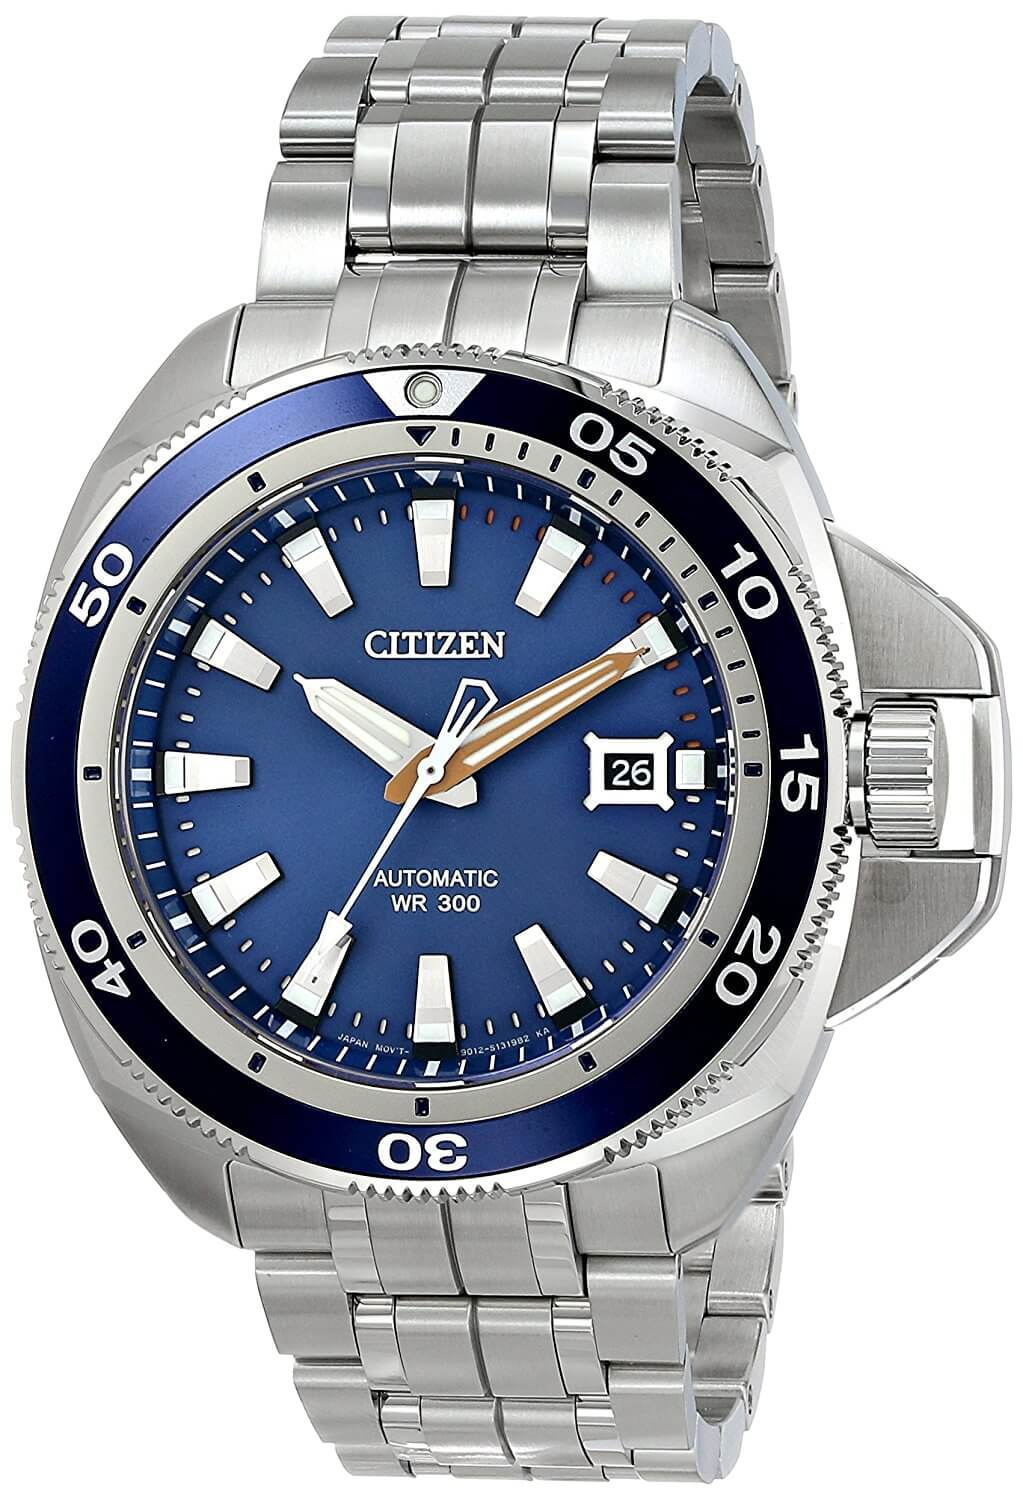 11. Citizen Grand Touring Sport NB1031-53L